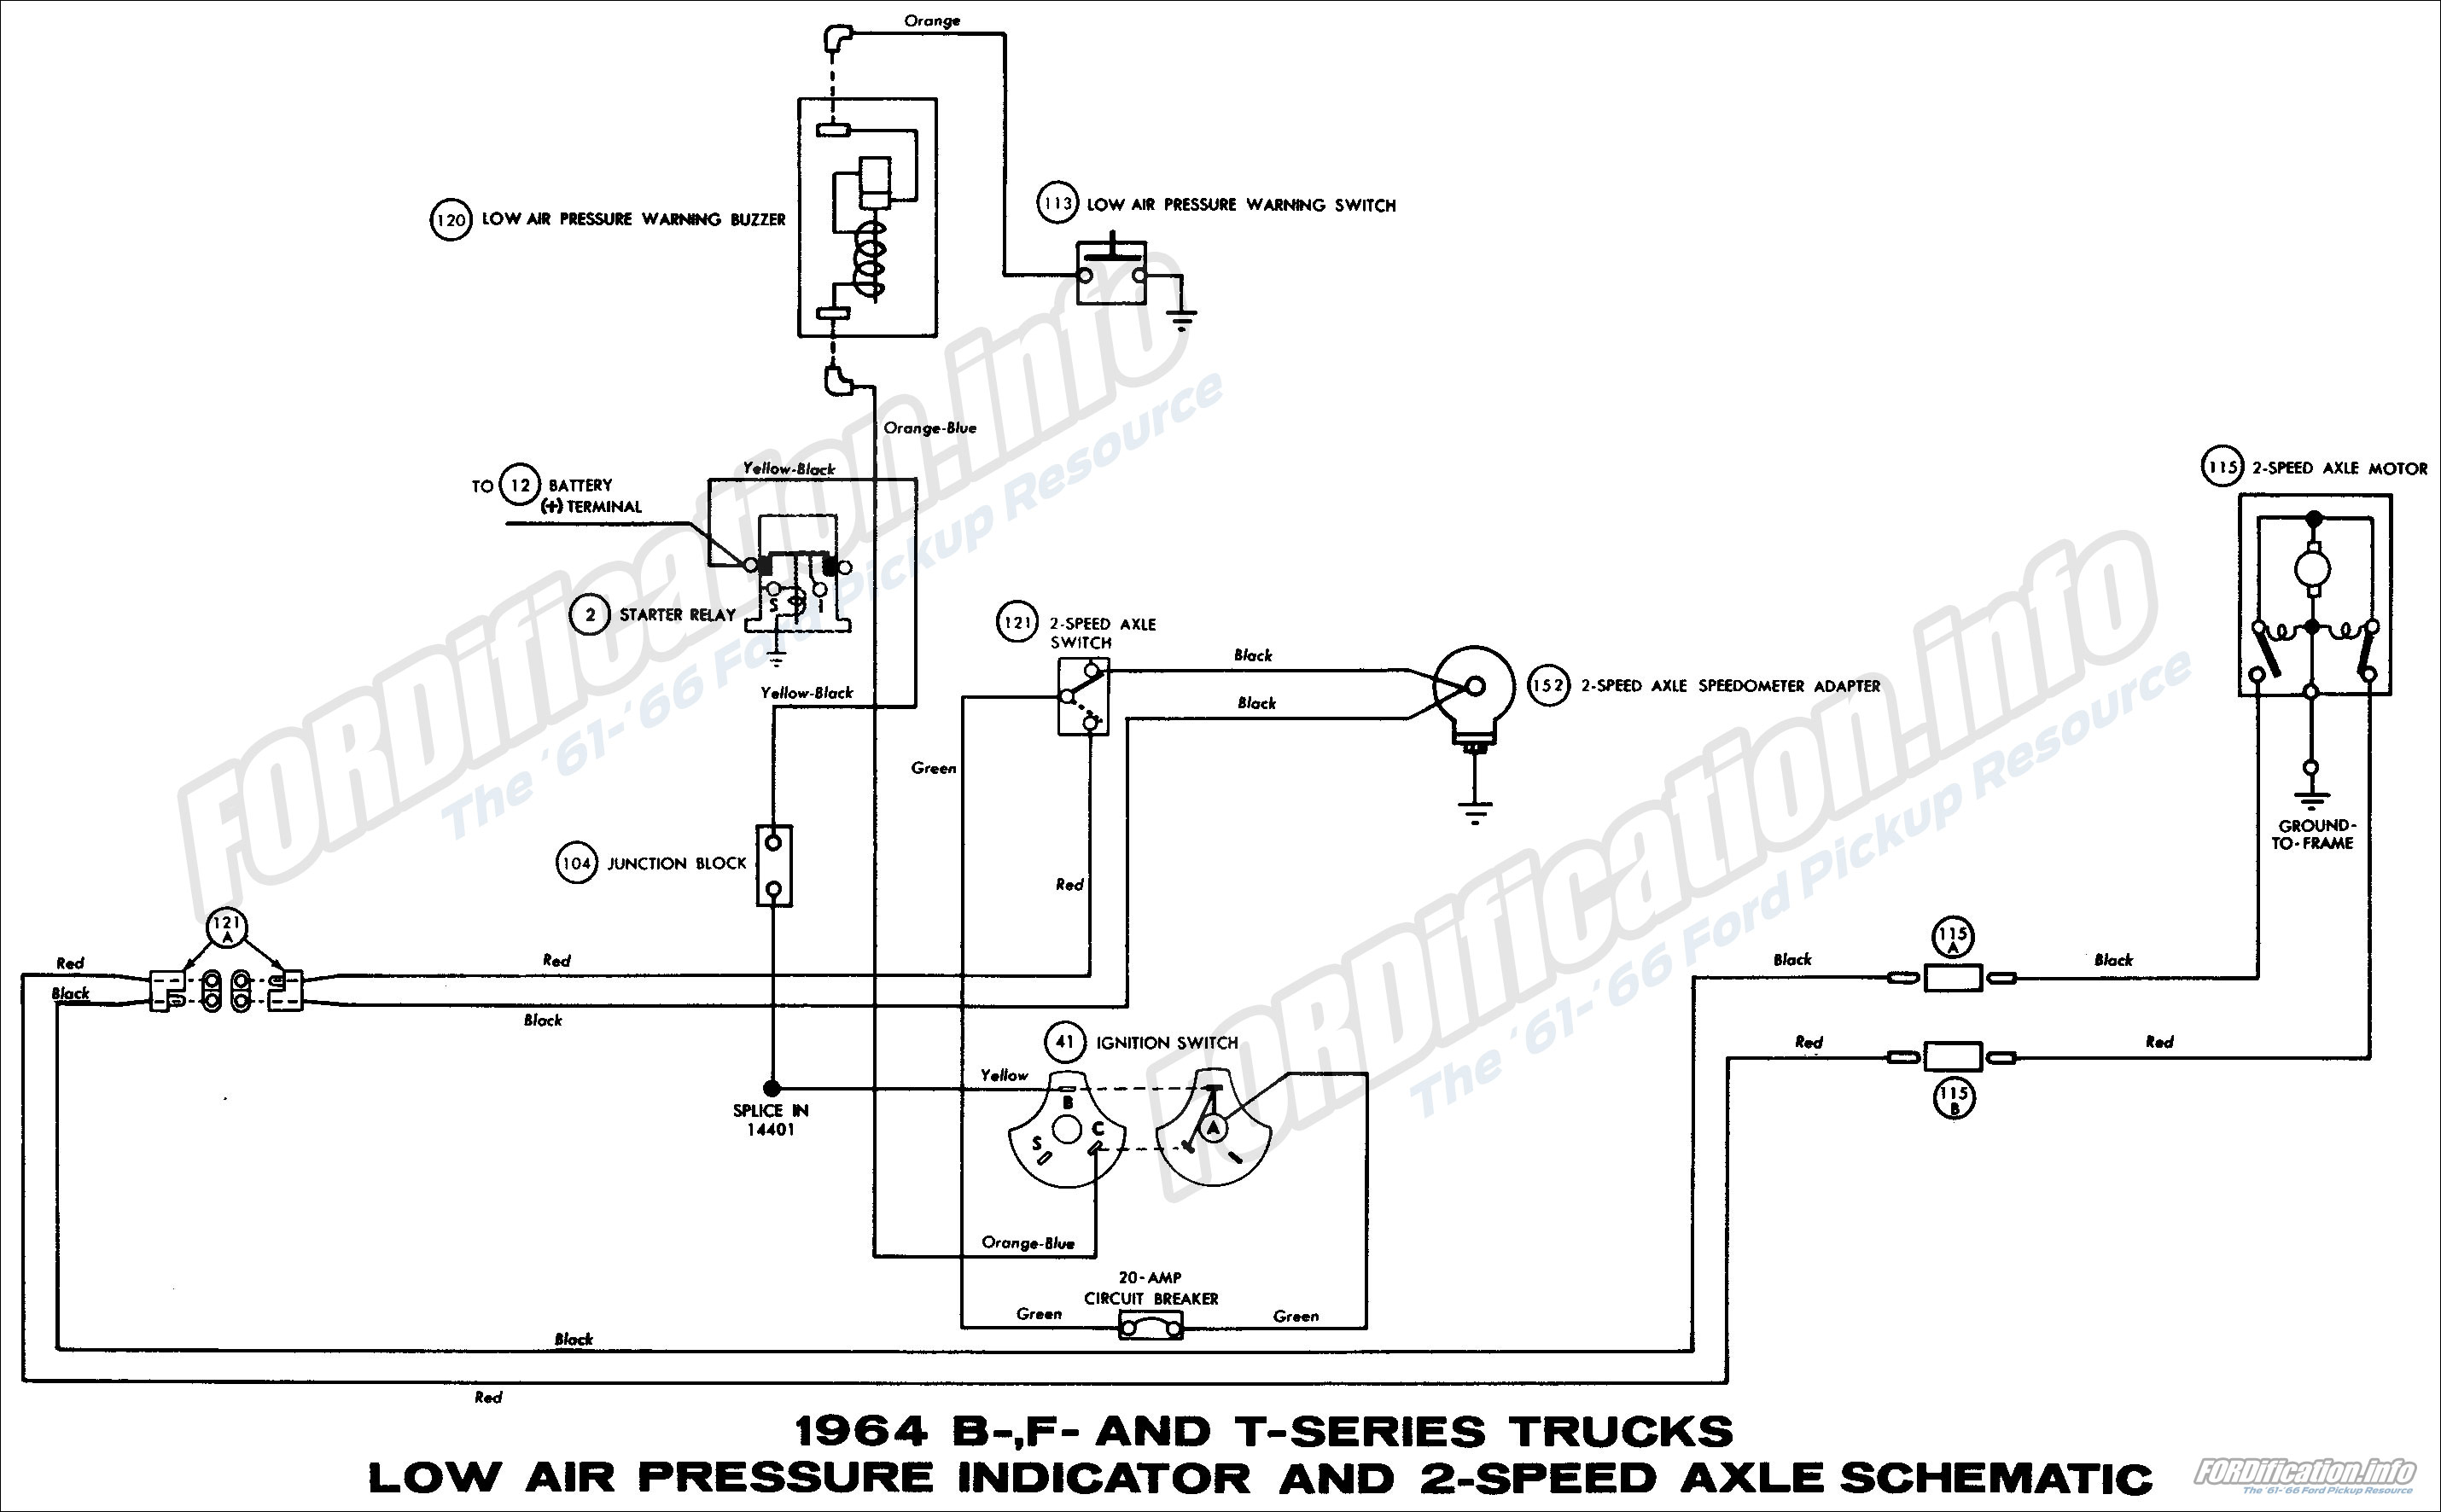 1964 Ford Truck Wiring Diagrams - FORDification.info - The '61-'66  Ford Pickup Wiring Diagram on 55 chevy wiring diagram, 33 ford wiring diagram, 31 ford wiring diagram, 41 chevy wiring diagram, 78 trans am wiring diagram, 41 plymouth wiring diagram, 71 maverick wiring diagram, 40 ford wiring diagram, 68 camaro wiring diagram,